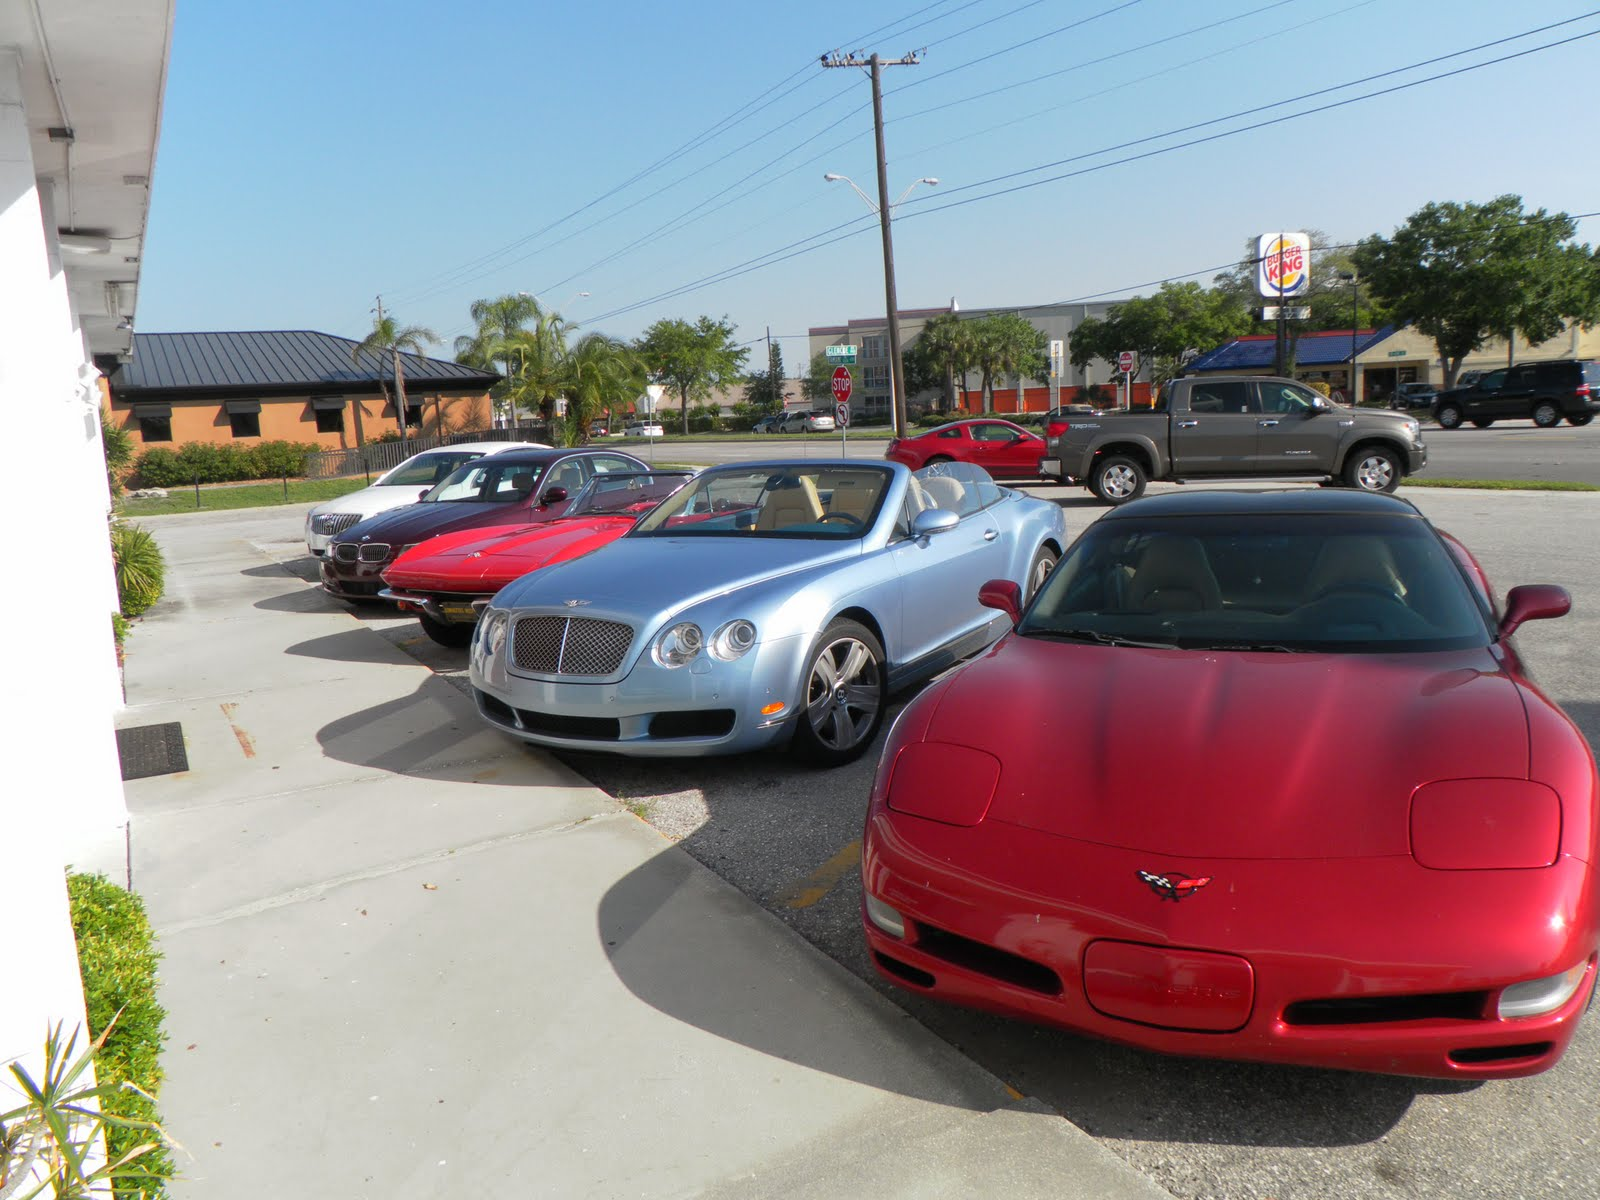 I Know What You Are Wondering Yes That Second Car From The Right Is A 2007 Bentley Convertible